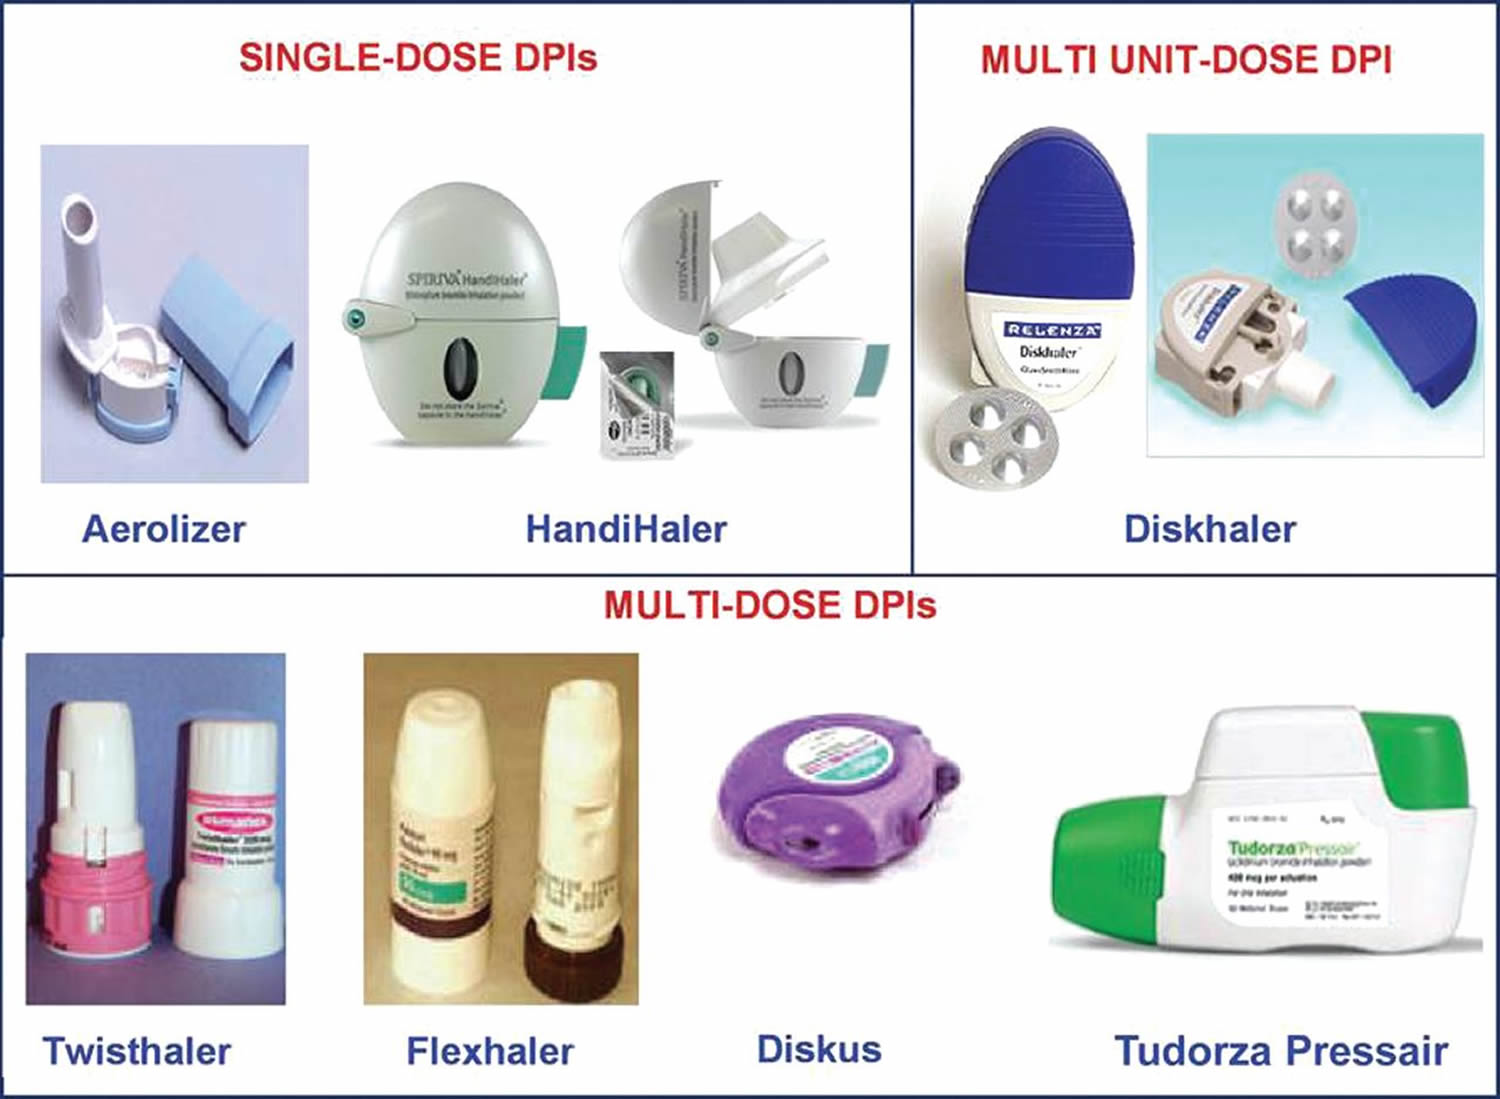 asthma dry powder inhalers